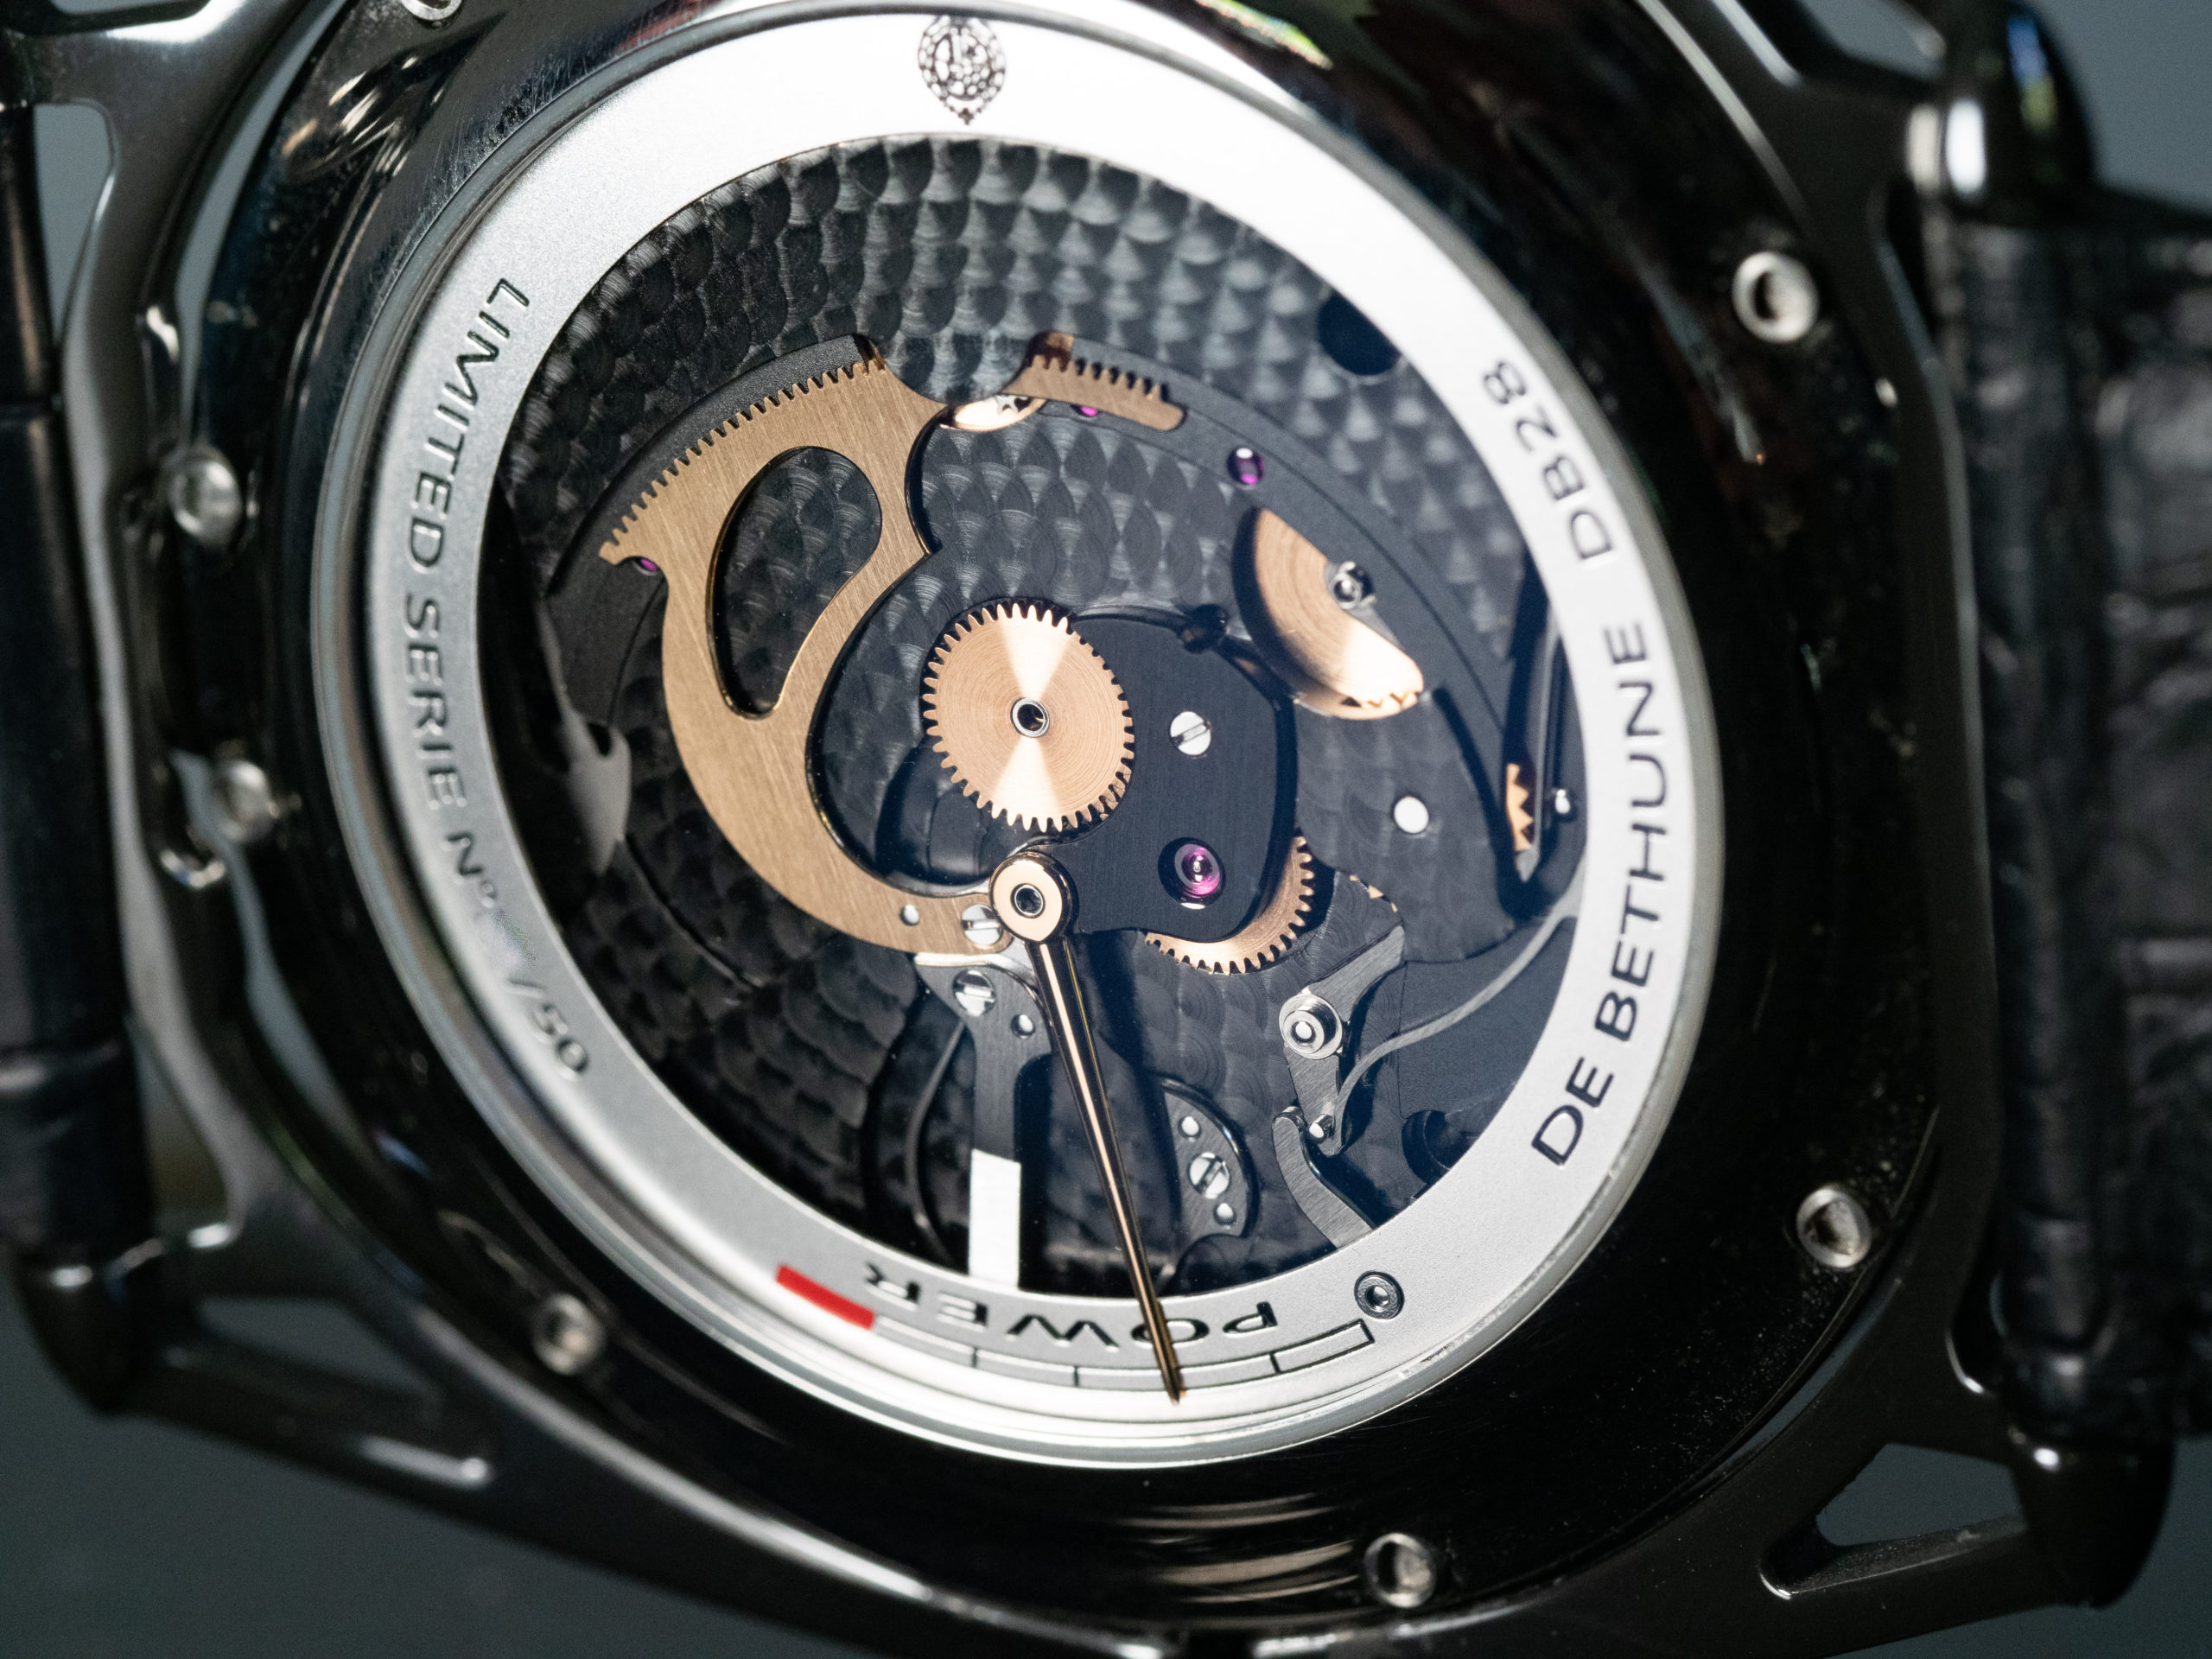 DB28 aiguille d'or movement